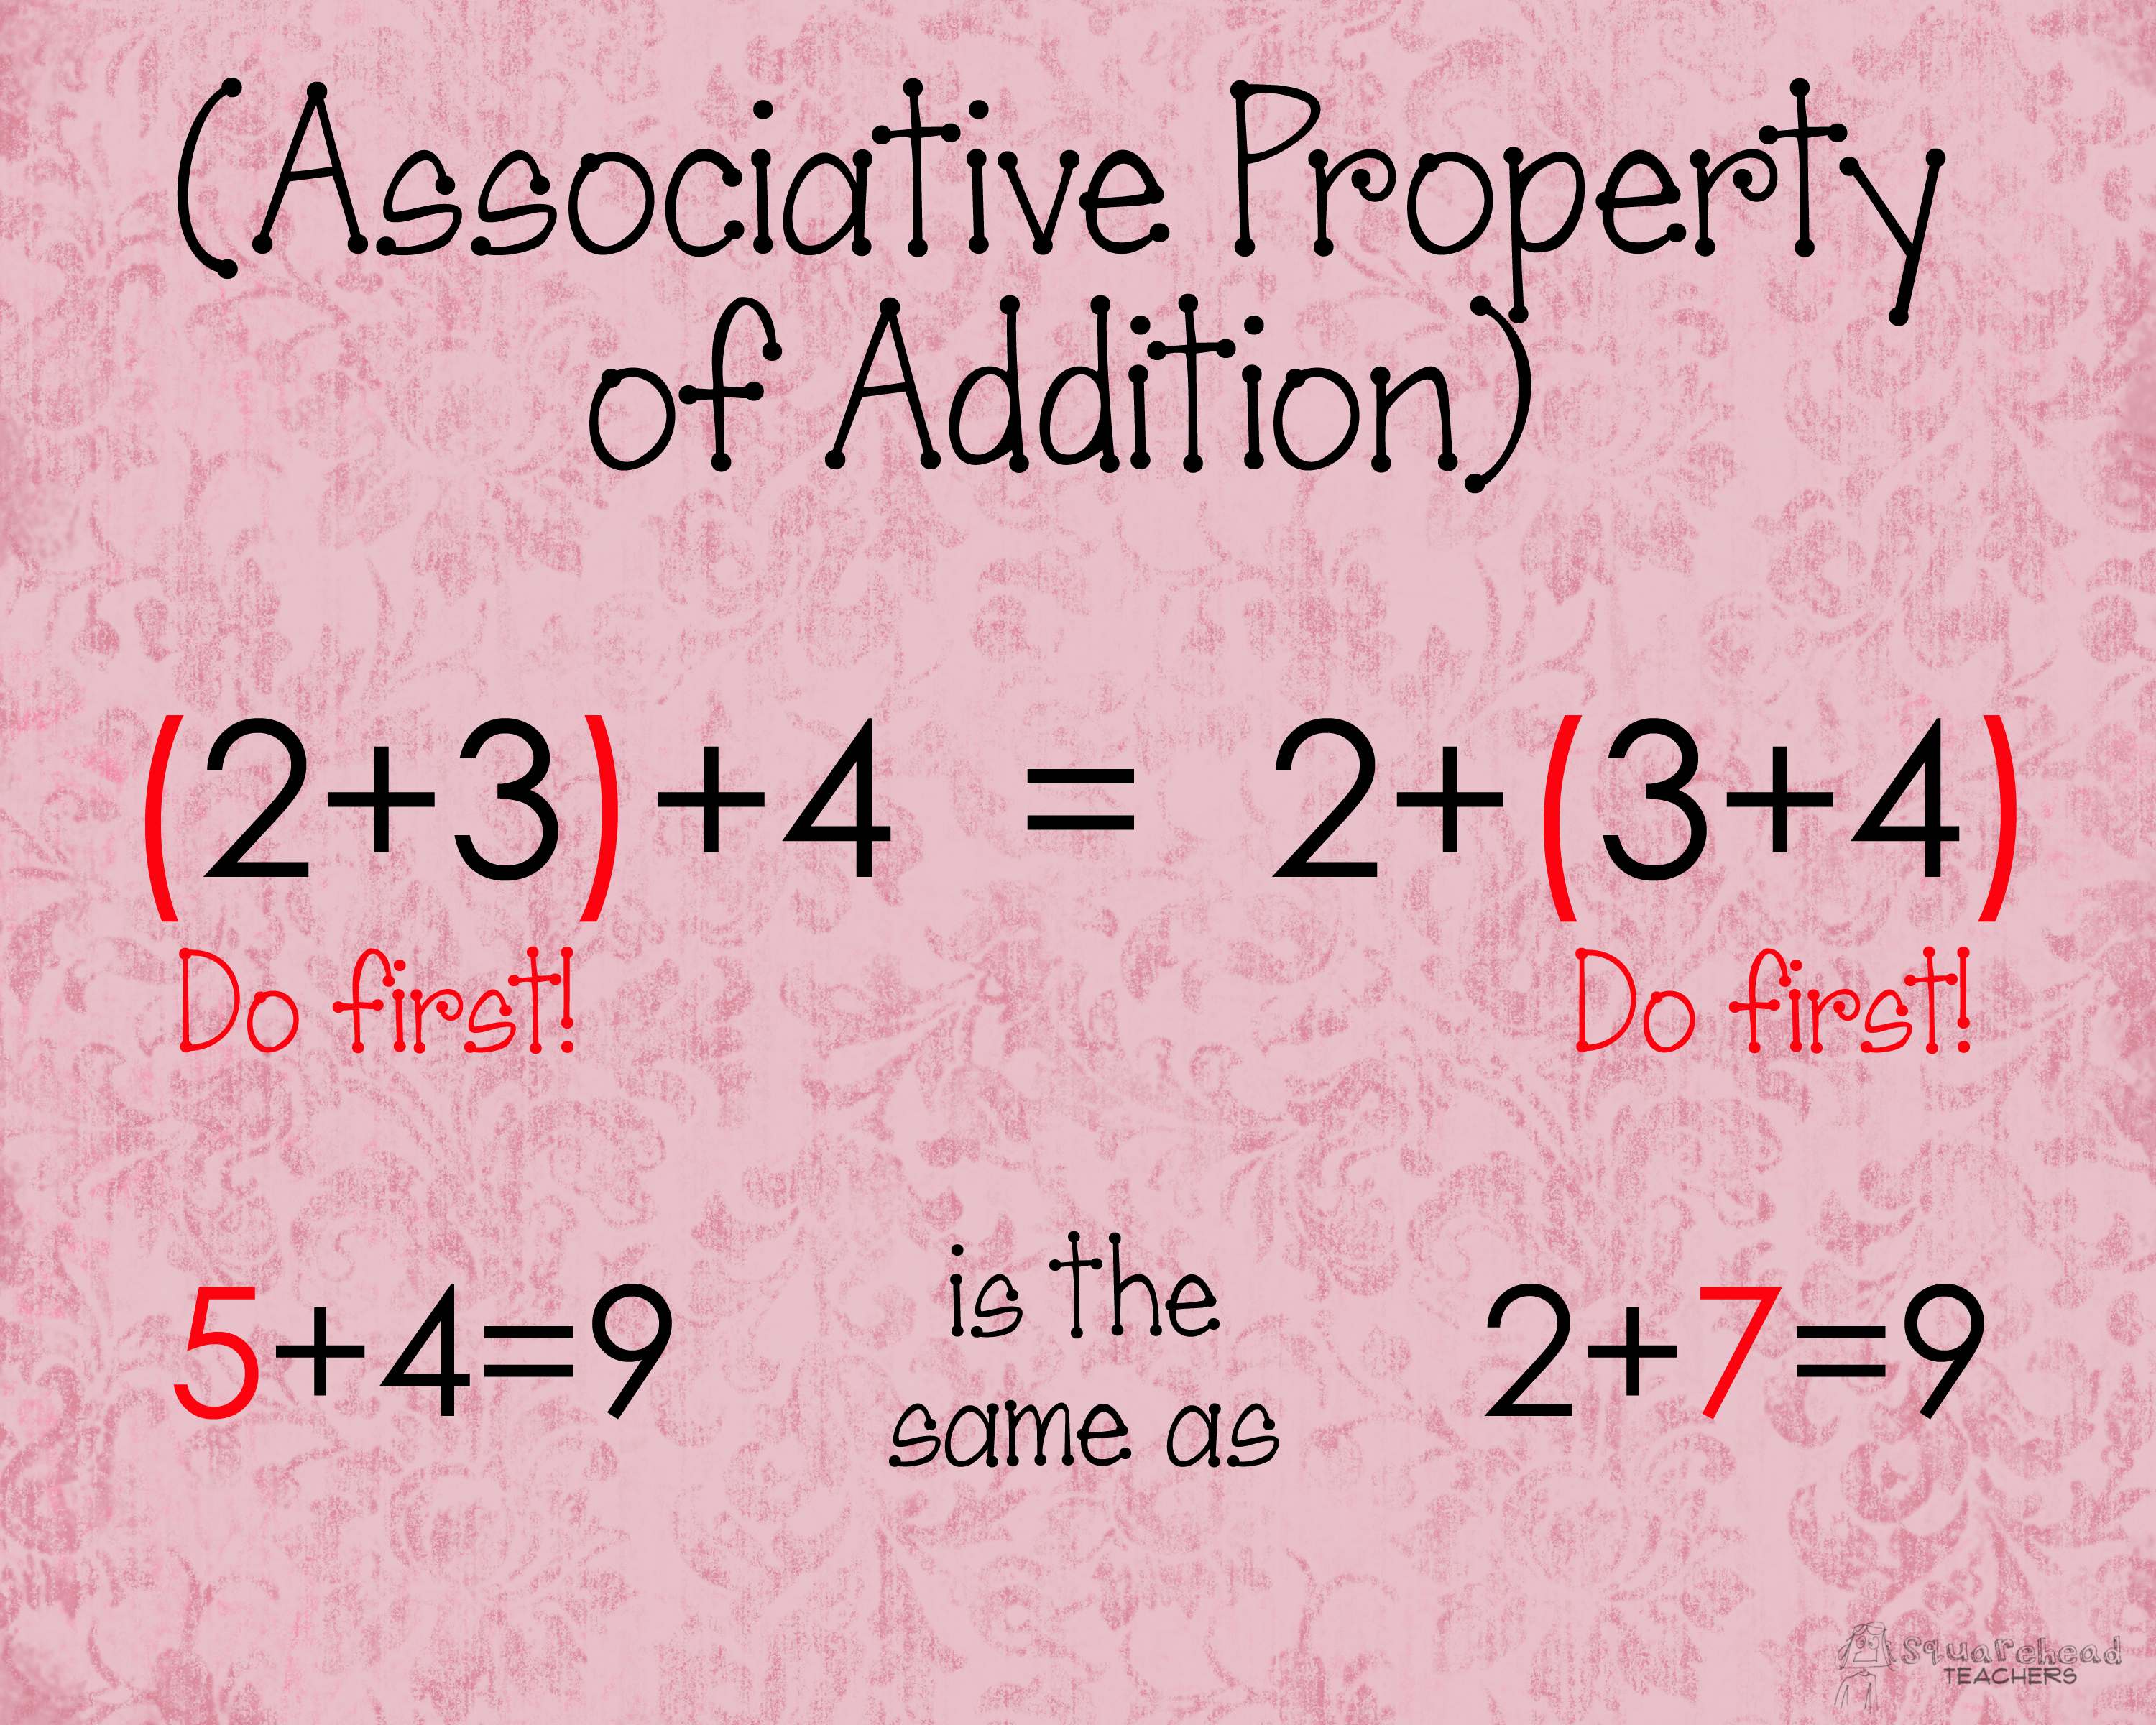 math worksheet : math  squarehead teachers  page 12 : Commutative And Associative Properties Of Addition Worksheets